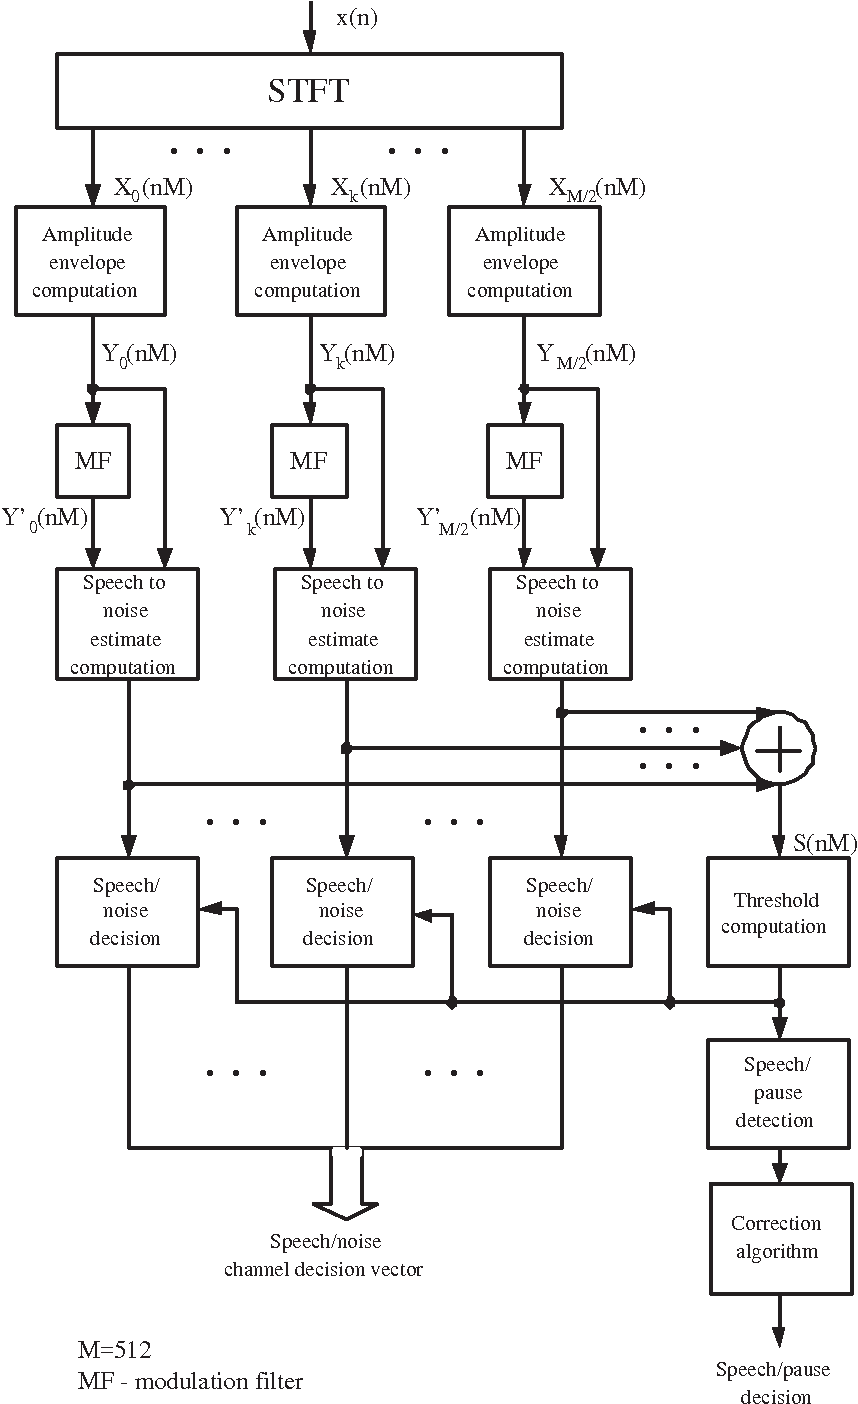 Figure 2 From Zeszyty Naukowe Politechniki Biaostockiej An Envelope Detector The Block Diagram Of Is Voice Activity Vad Based On